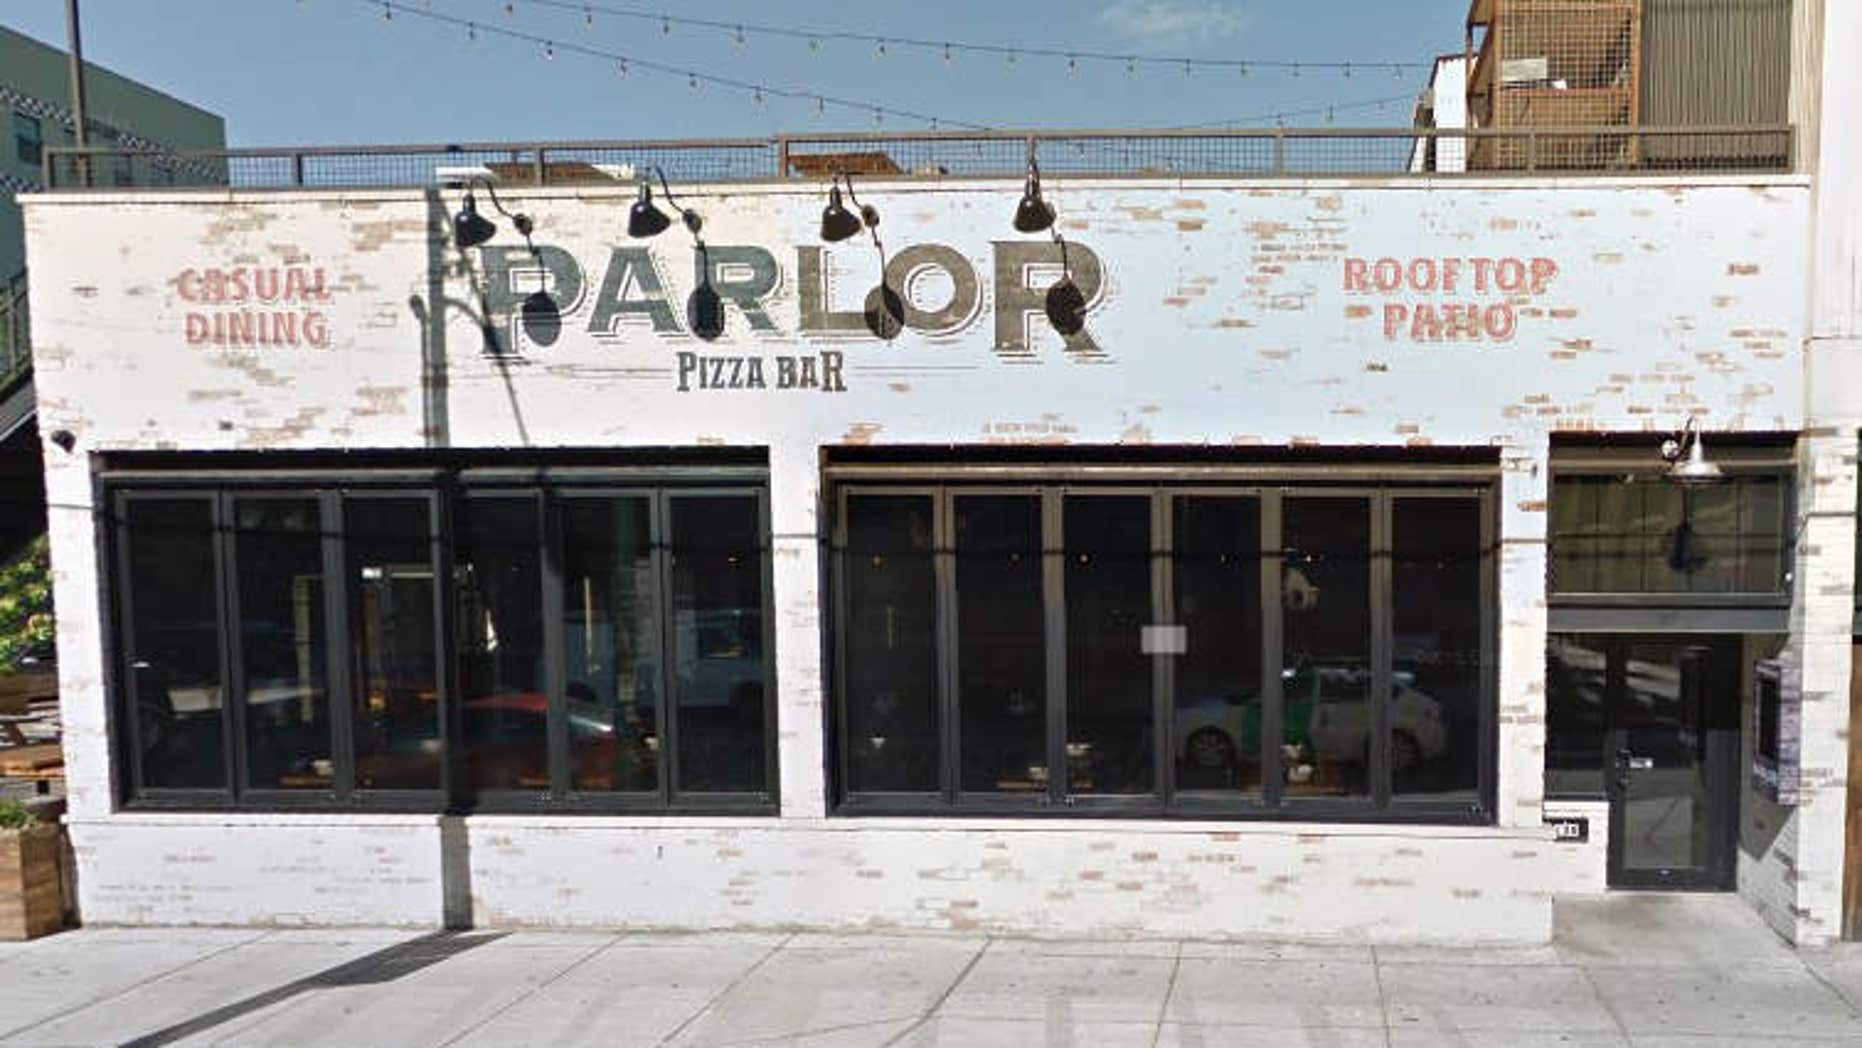 Parlor Pizza in Chicago.